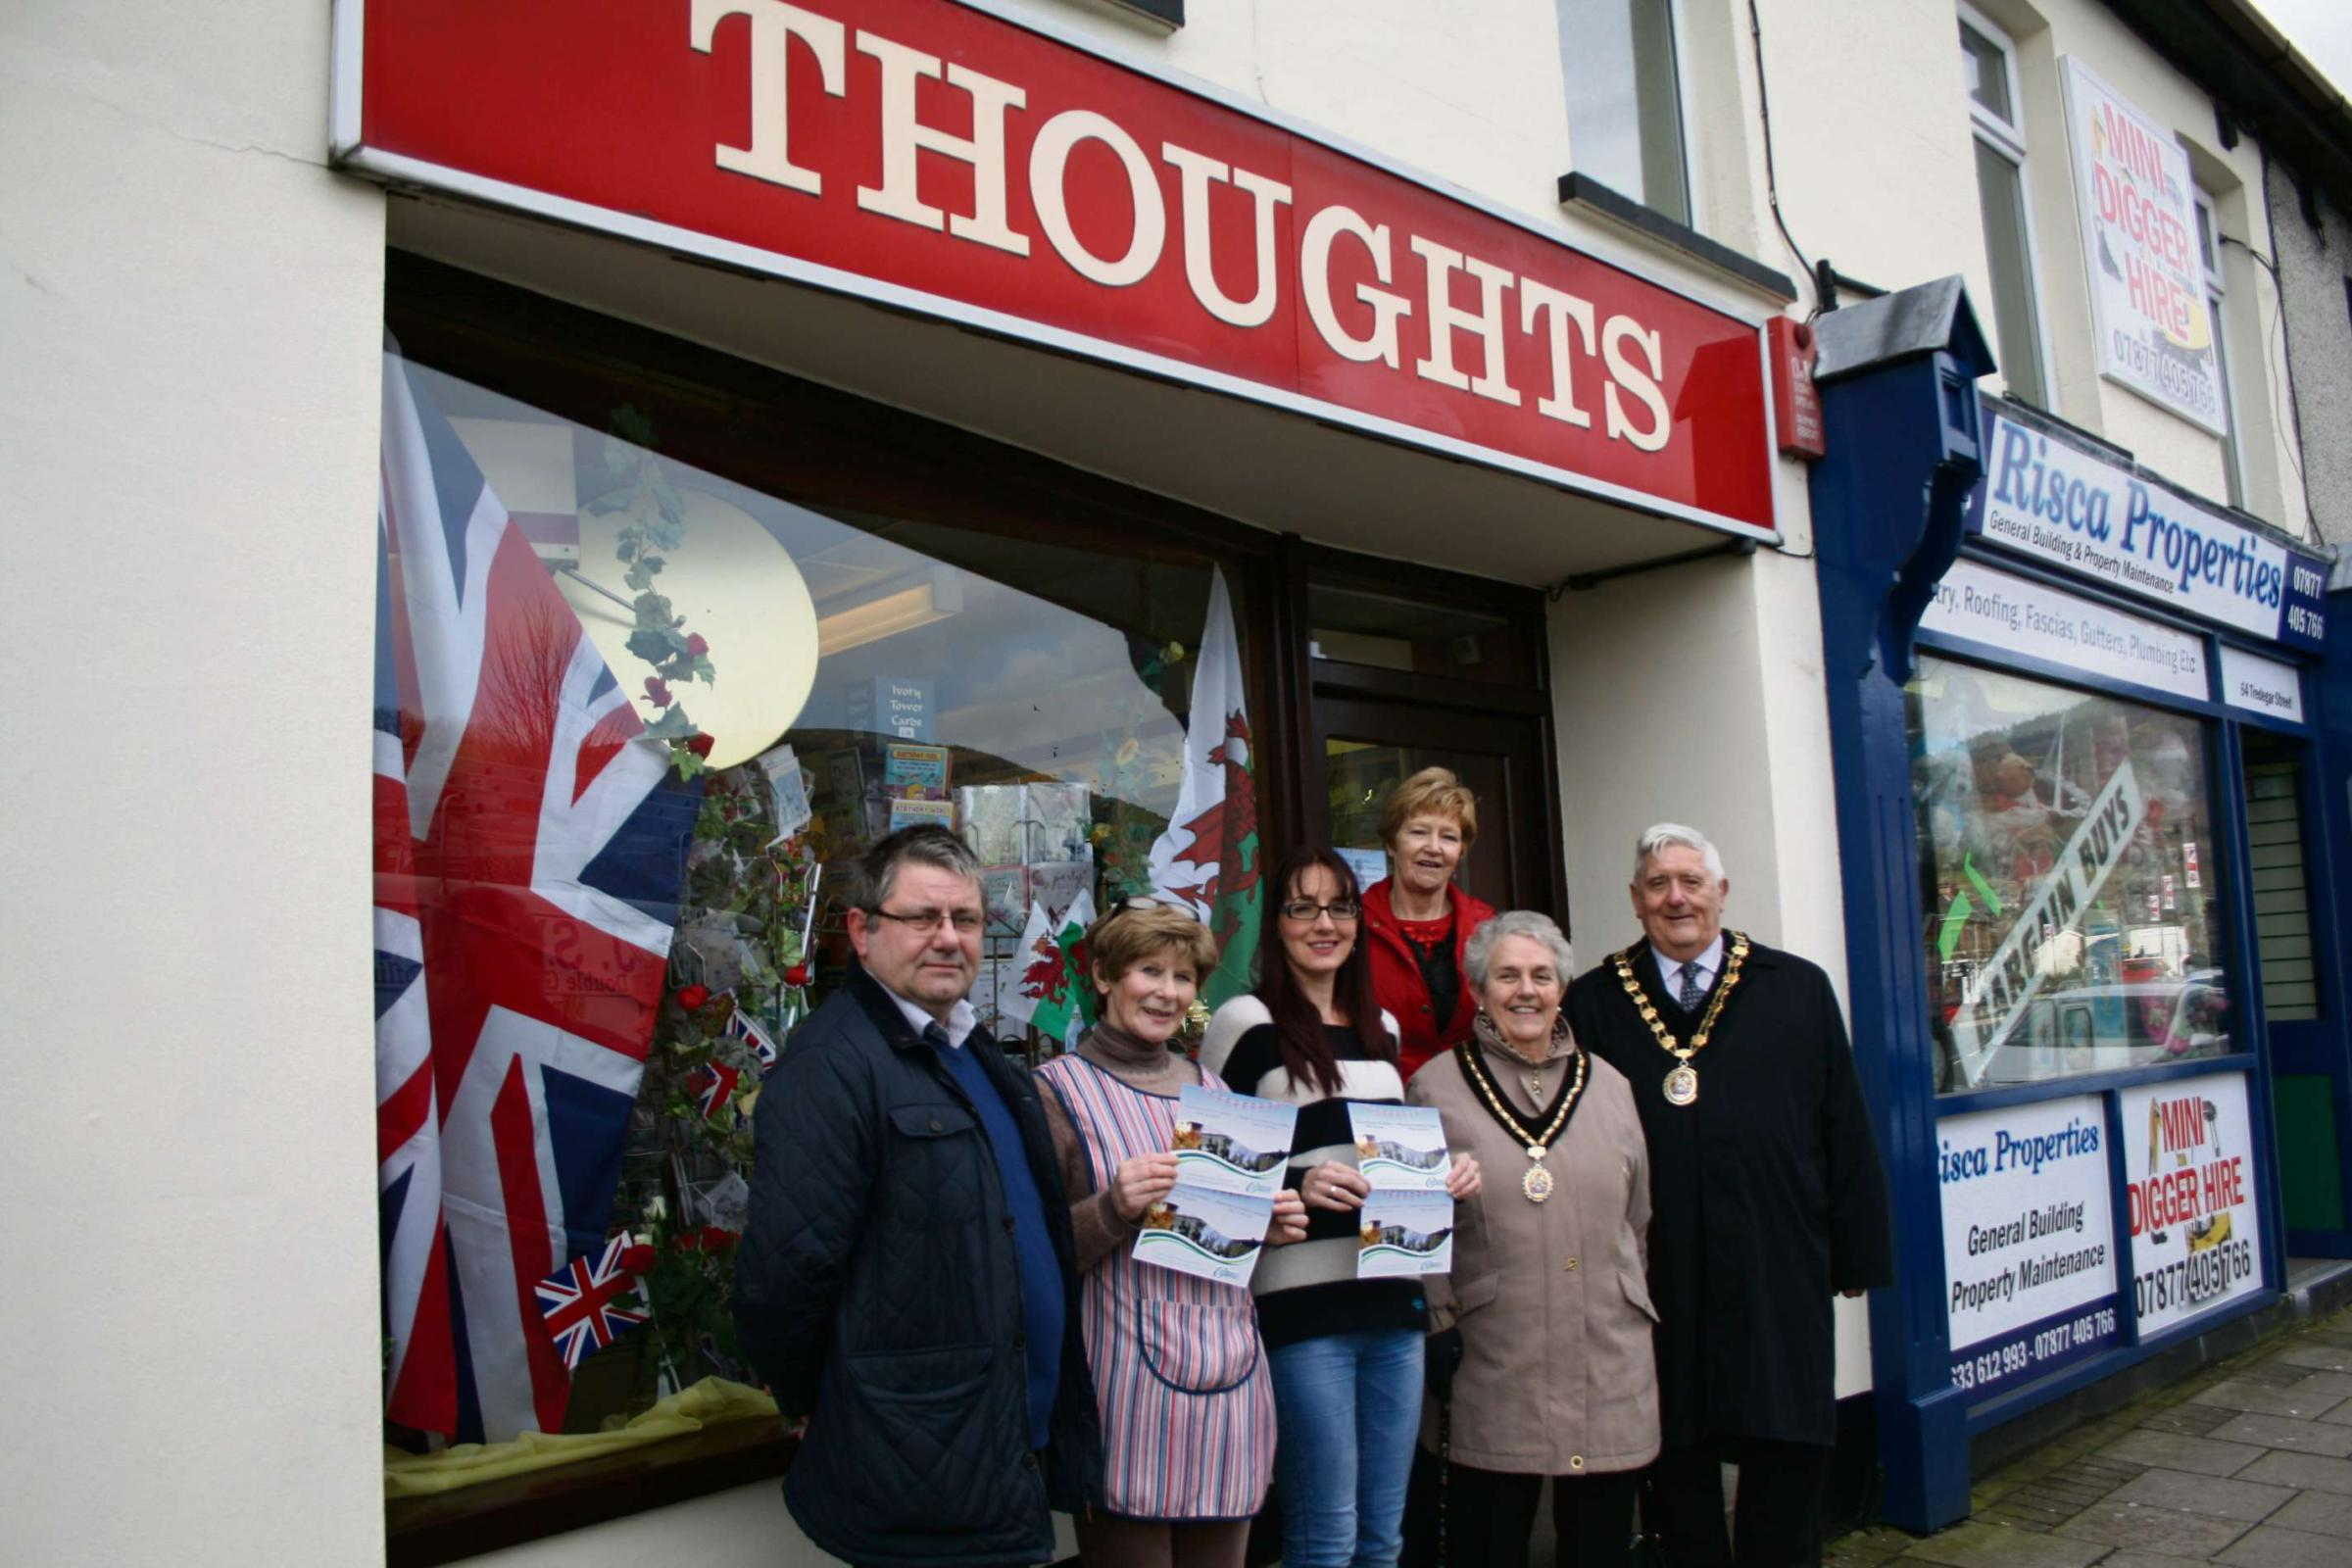 WINNERS: Thoughts employees Chris Arkell and Julia Lee celebrate winning the 'Dress your Shop' competition with Cllr Nigel George, Cllr Hazel Dupre, Mrs Ruth Gray and mayor of Caerphilly, Cllr Michael Gray.